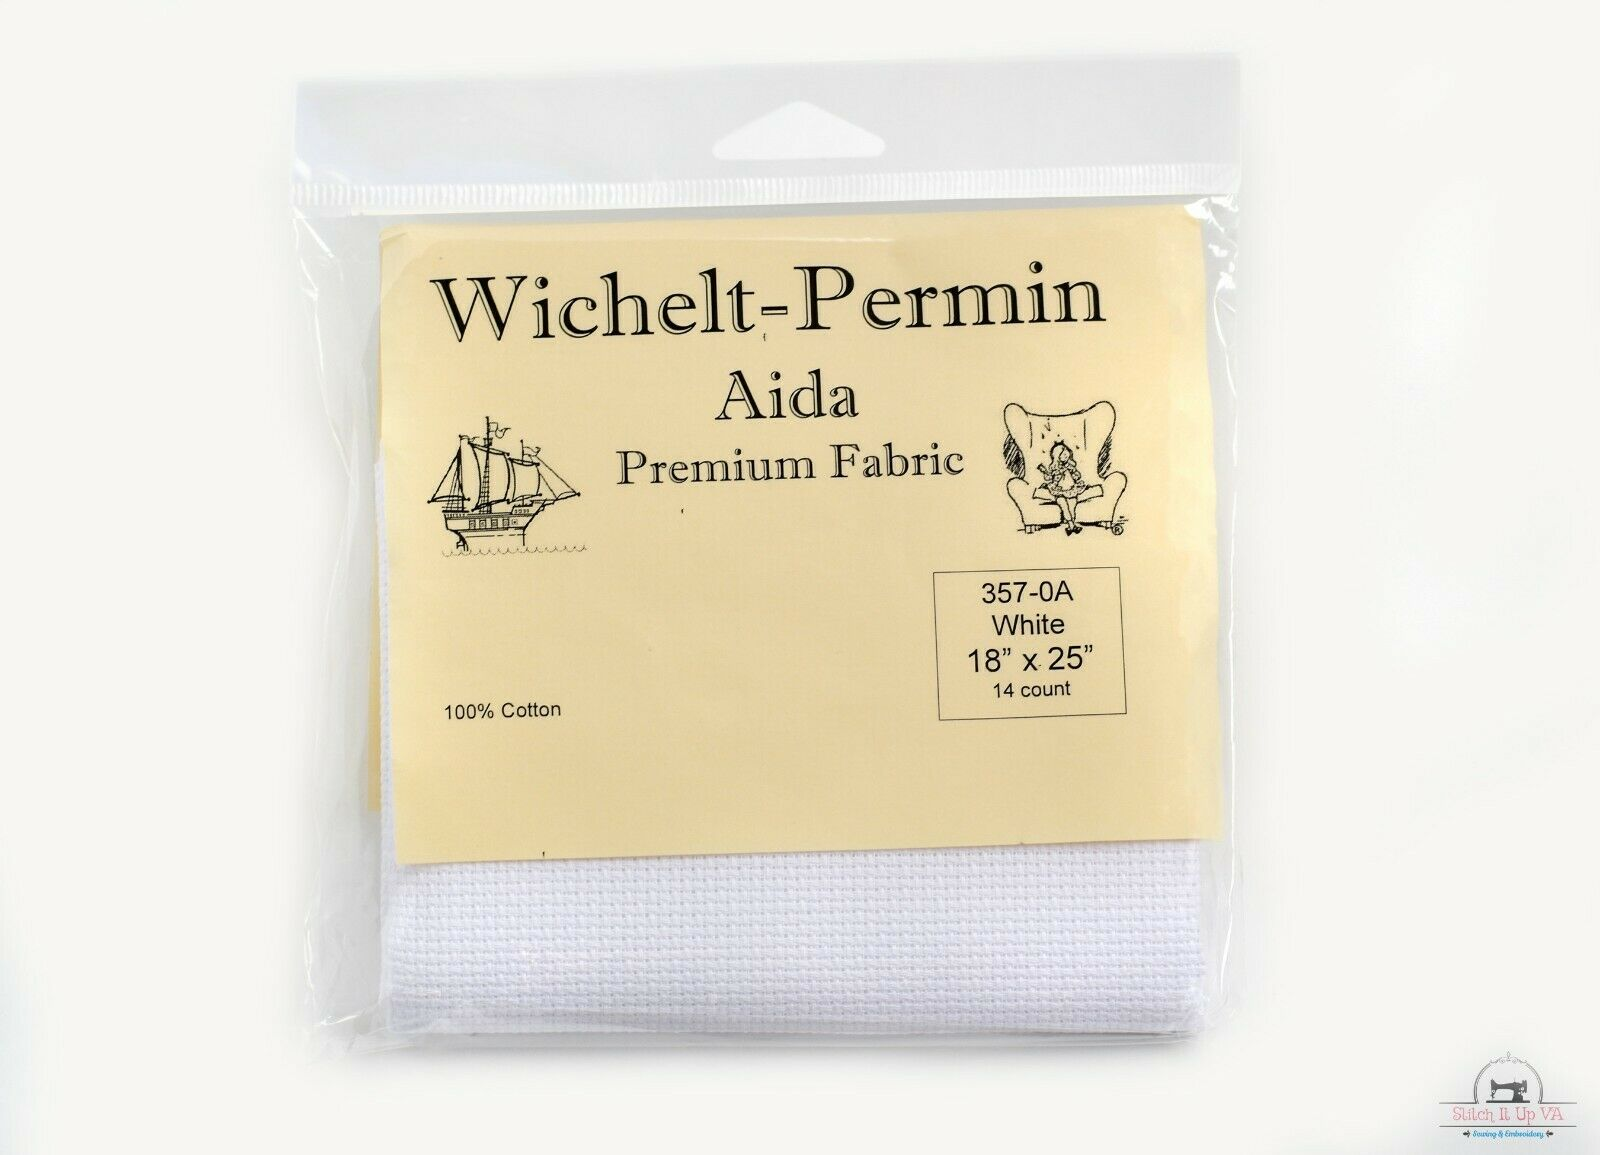 Aida 14 Count Fabric by Wichelt-Permin